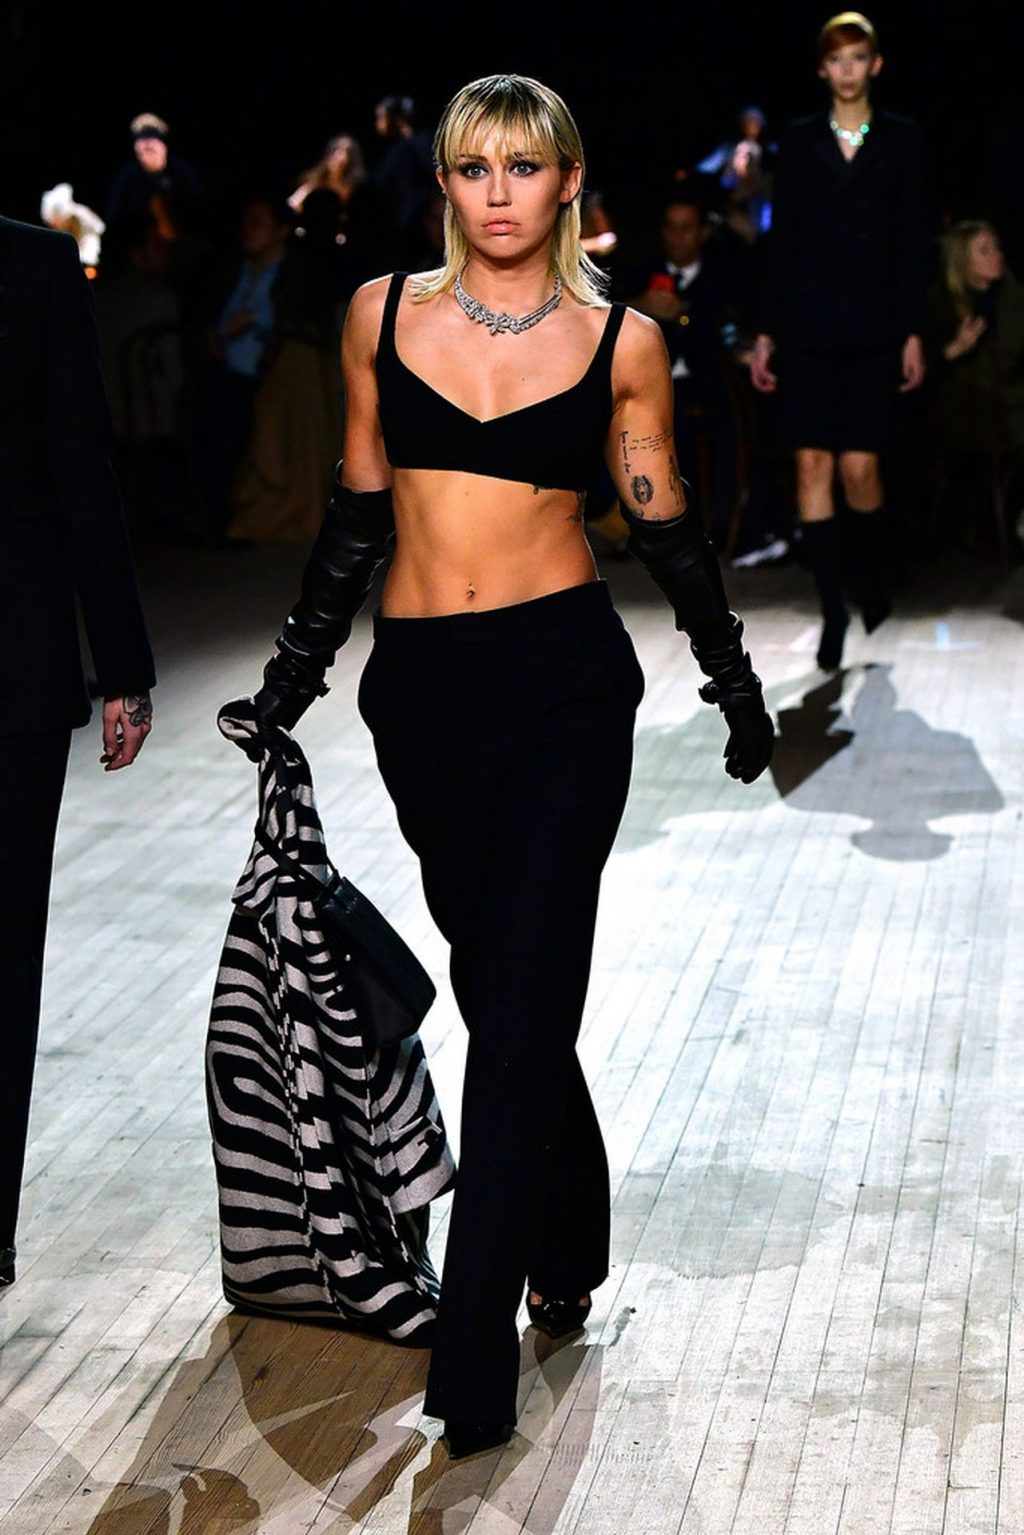 Miley Cyrus Sexy The Fappening Blog 4 4 1024x1535 - Miley Cyrus Walks the Runway at the Marc Jacobs Show (22 Photos + GIF & Video)